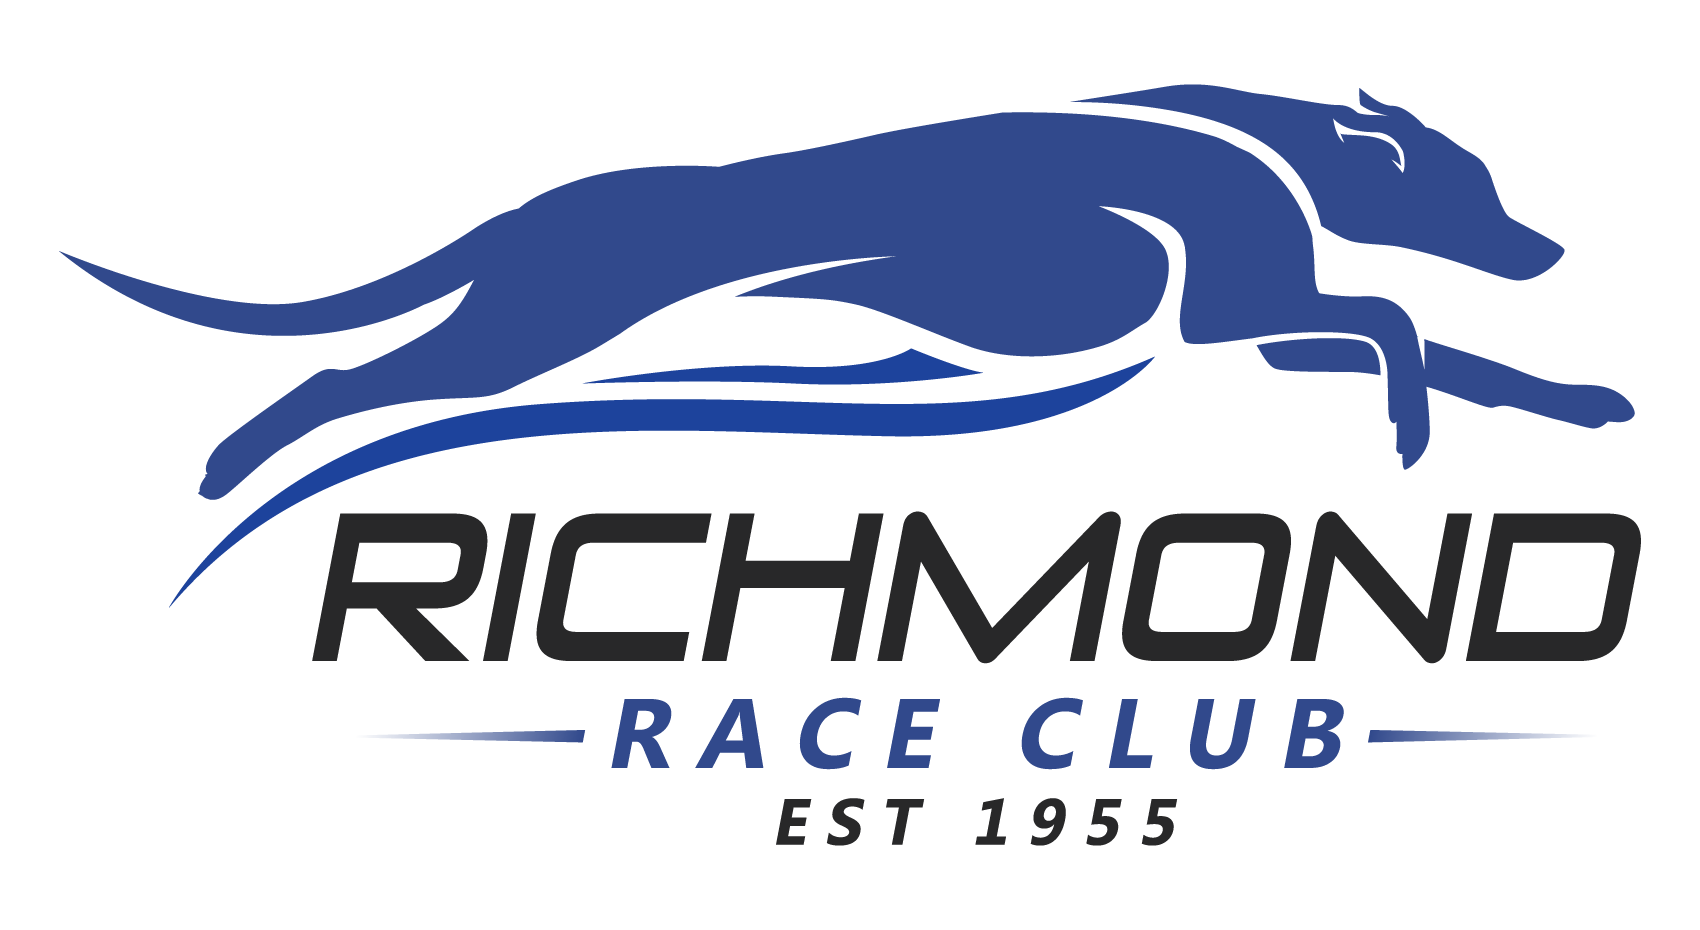 Richmond Race Club